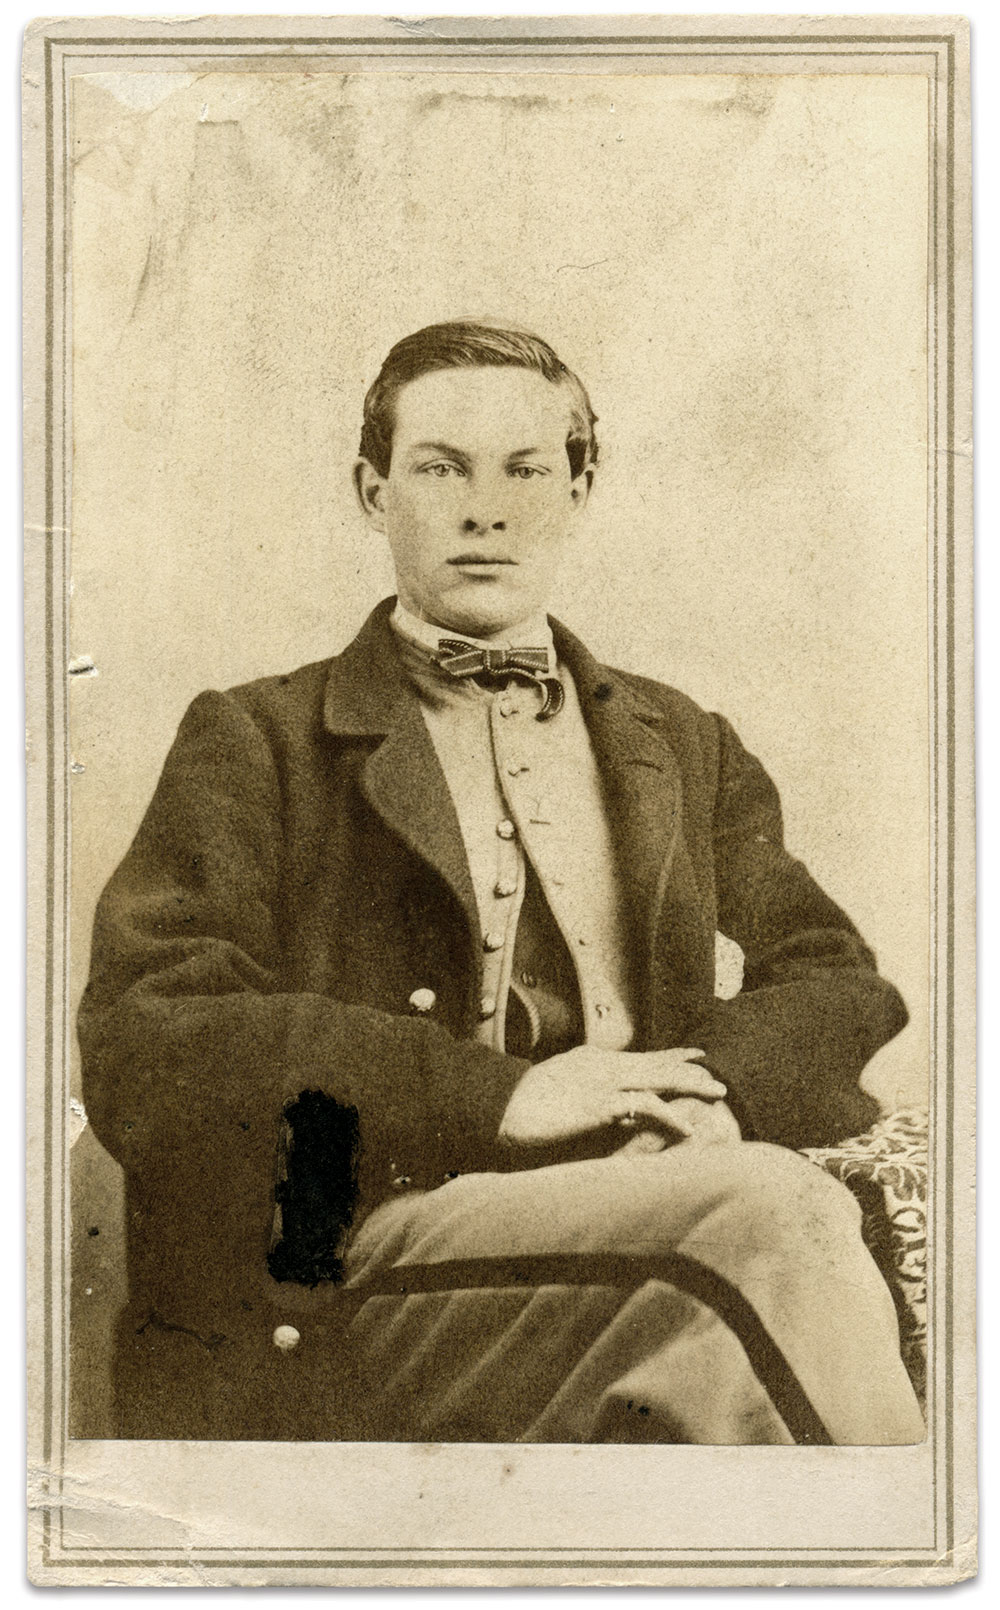 Cpl. May. Carte de visite by L.D. Cox of Ludlow, Vt. John Gibson Collection.